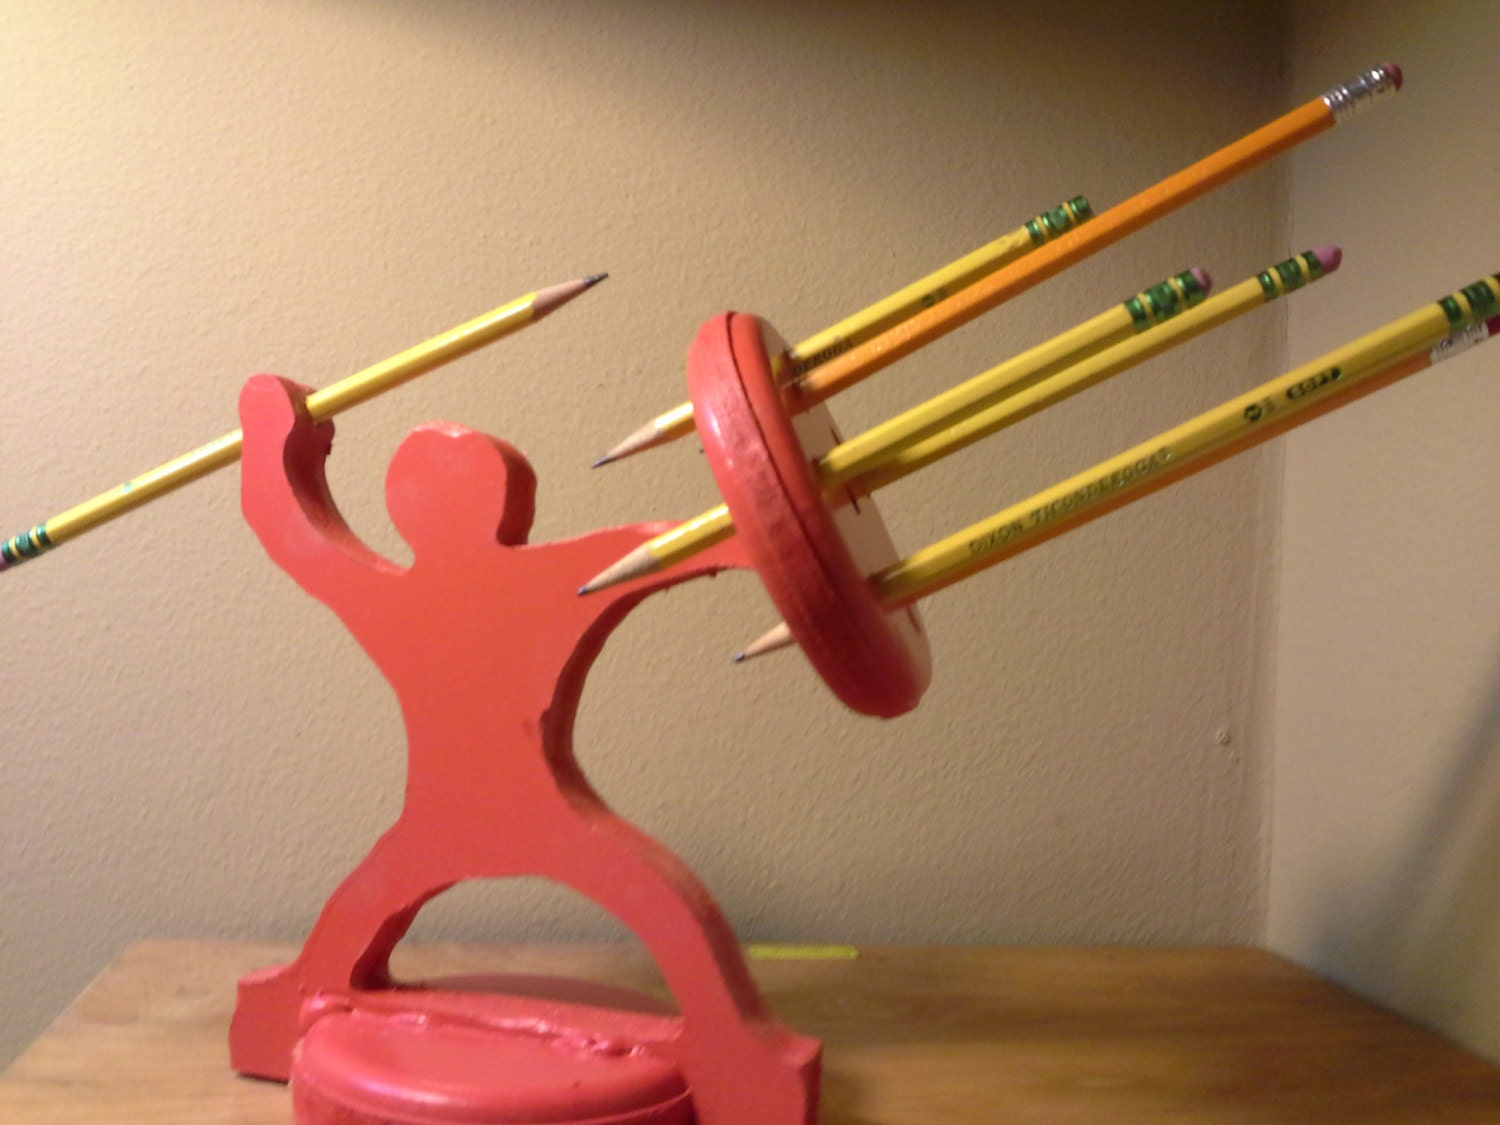 Pencil holder warrior the most awesome pencil holder ever Cool pencil holder ideas